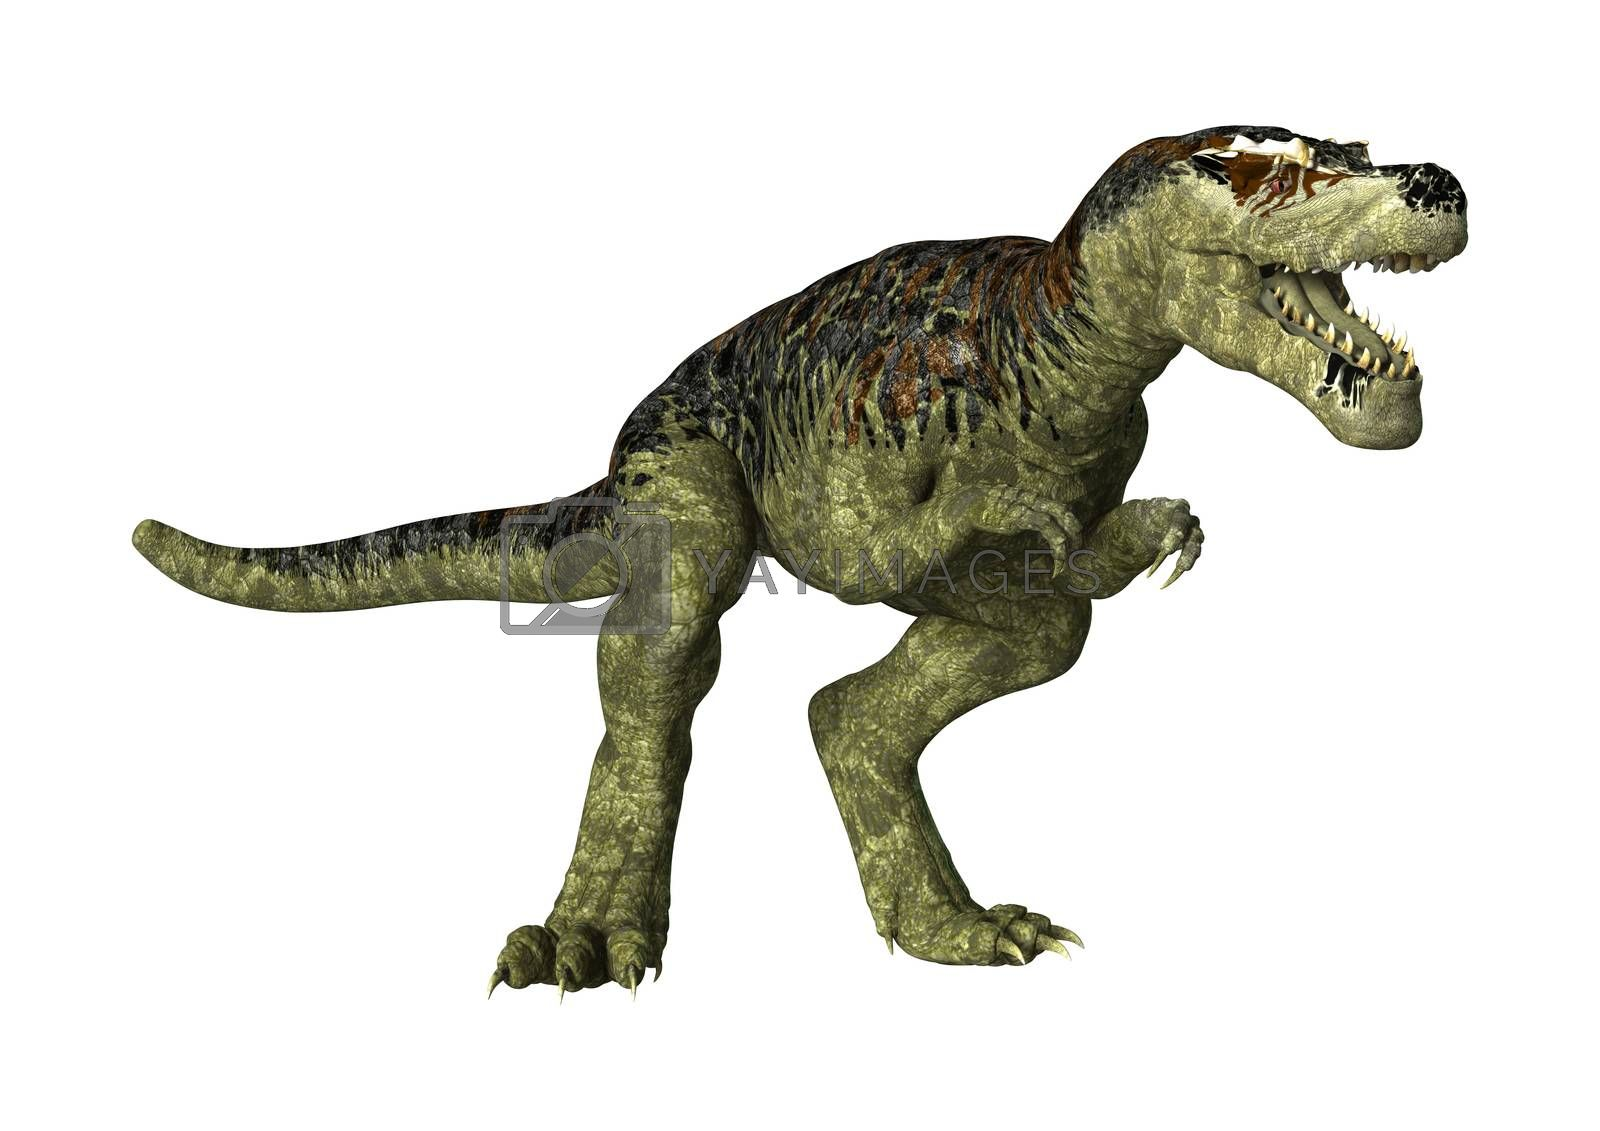 3D digital render of a dinosaur Tyrannosaurus Rex  isolated on white background